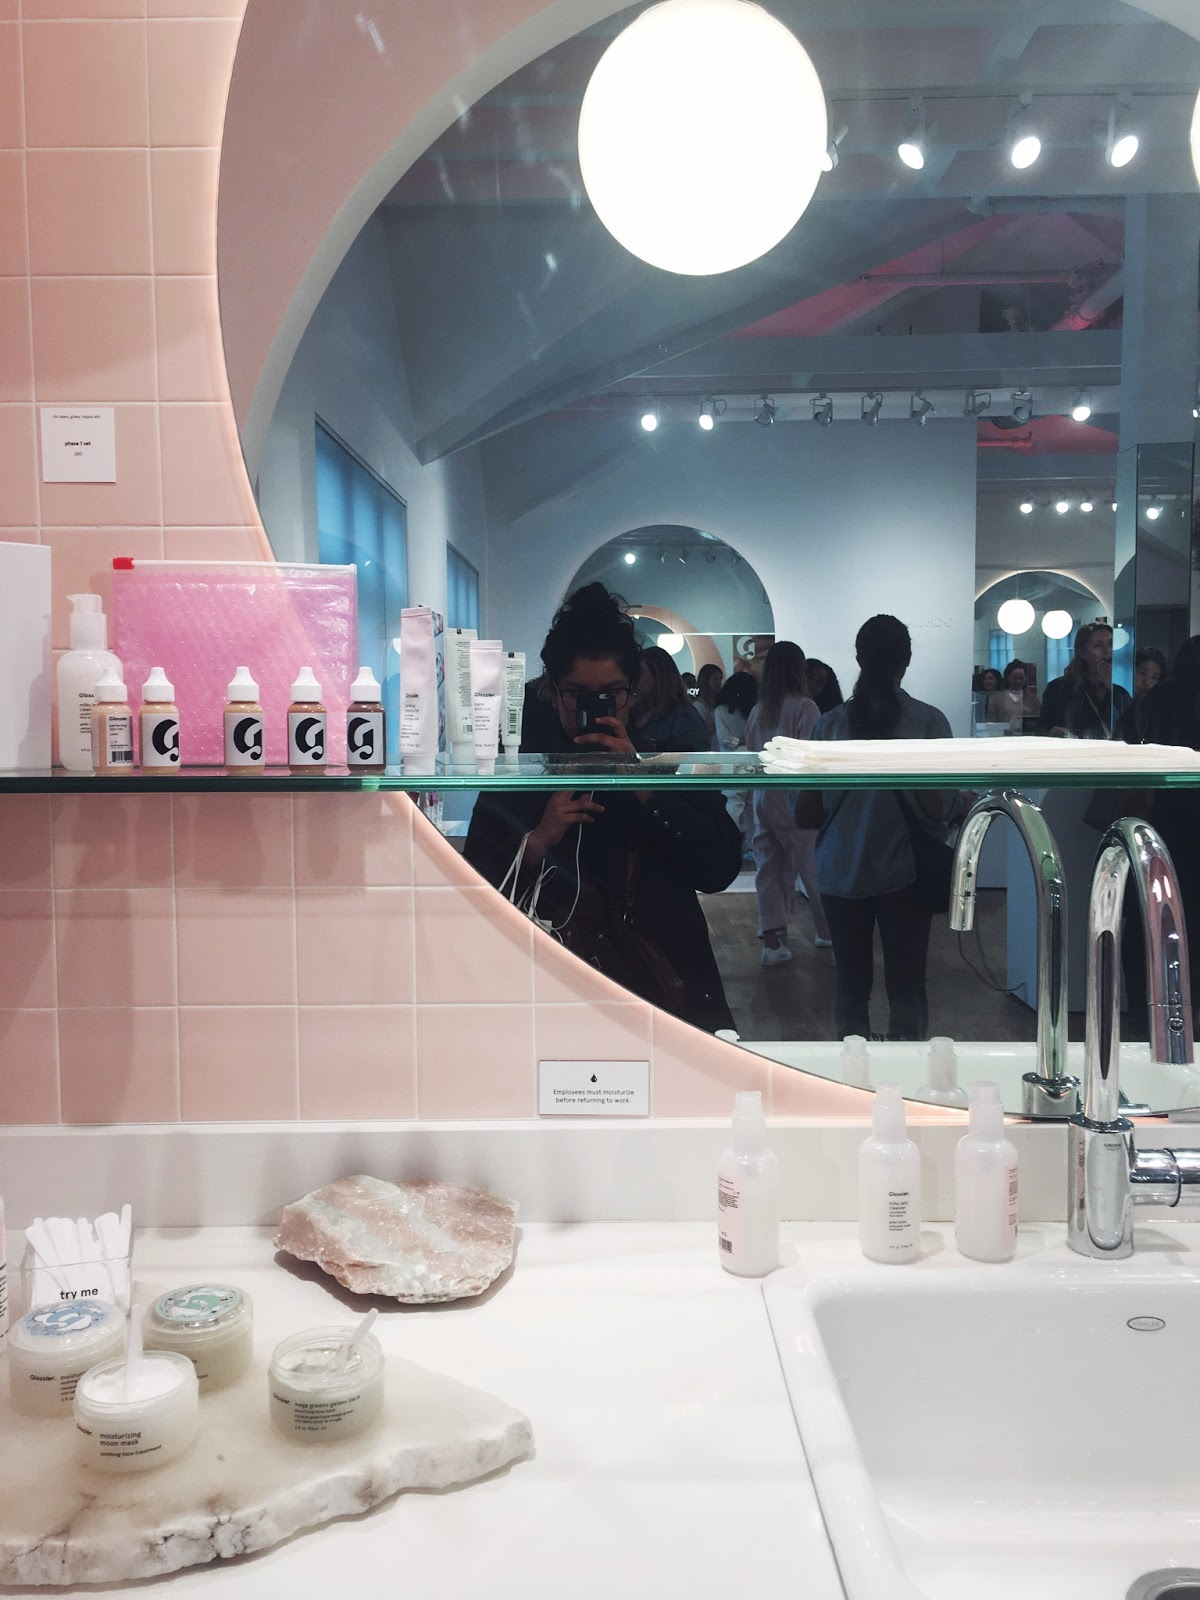 glossier showroom nyc, glossier new york city showroom, glossier nyc, glossier pop up, glossier shop, glossier store